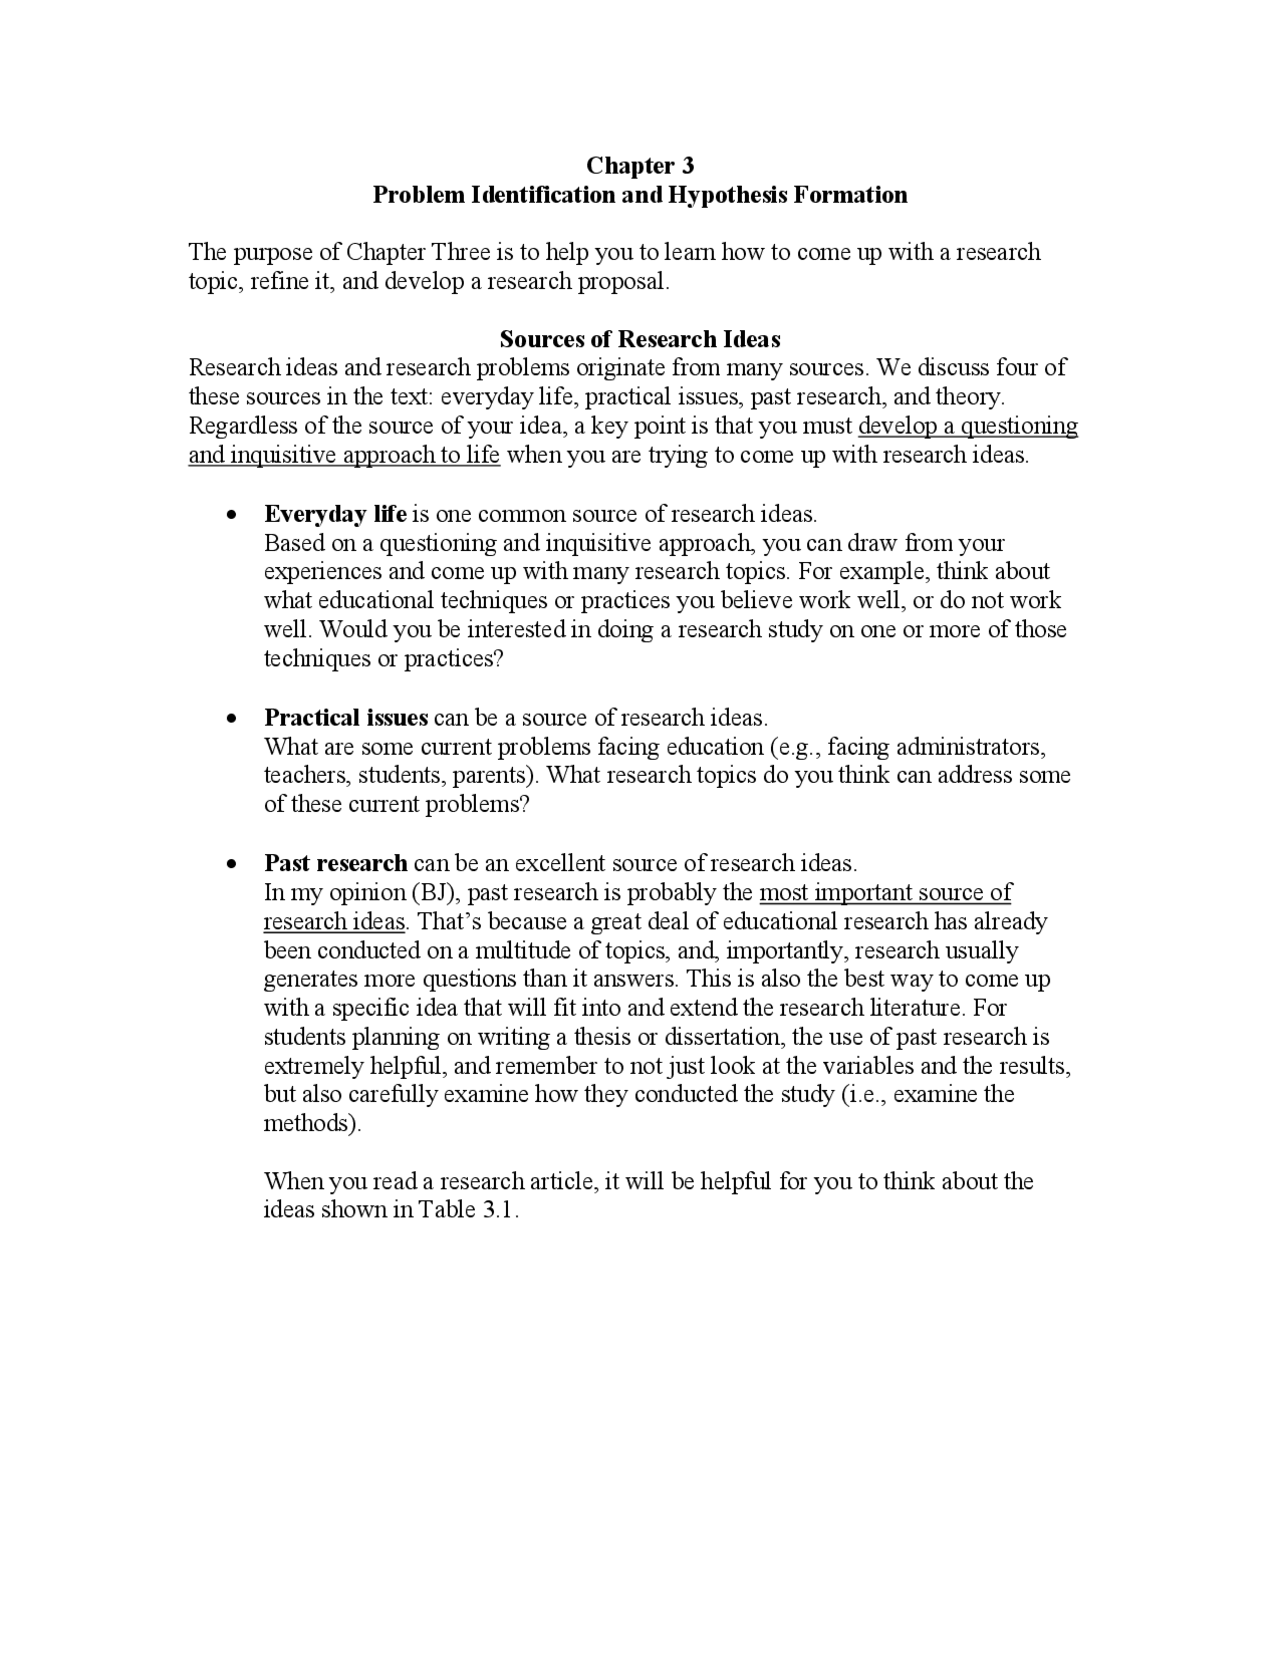 Sample of hypothesis in research proposal area of interest in resume for computer science